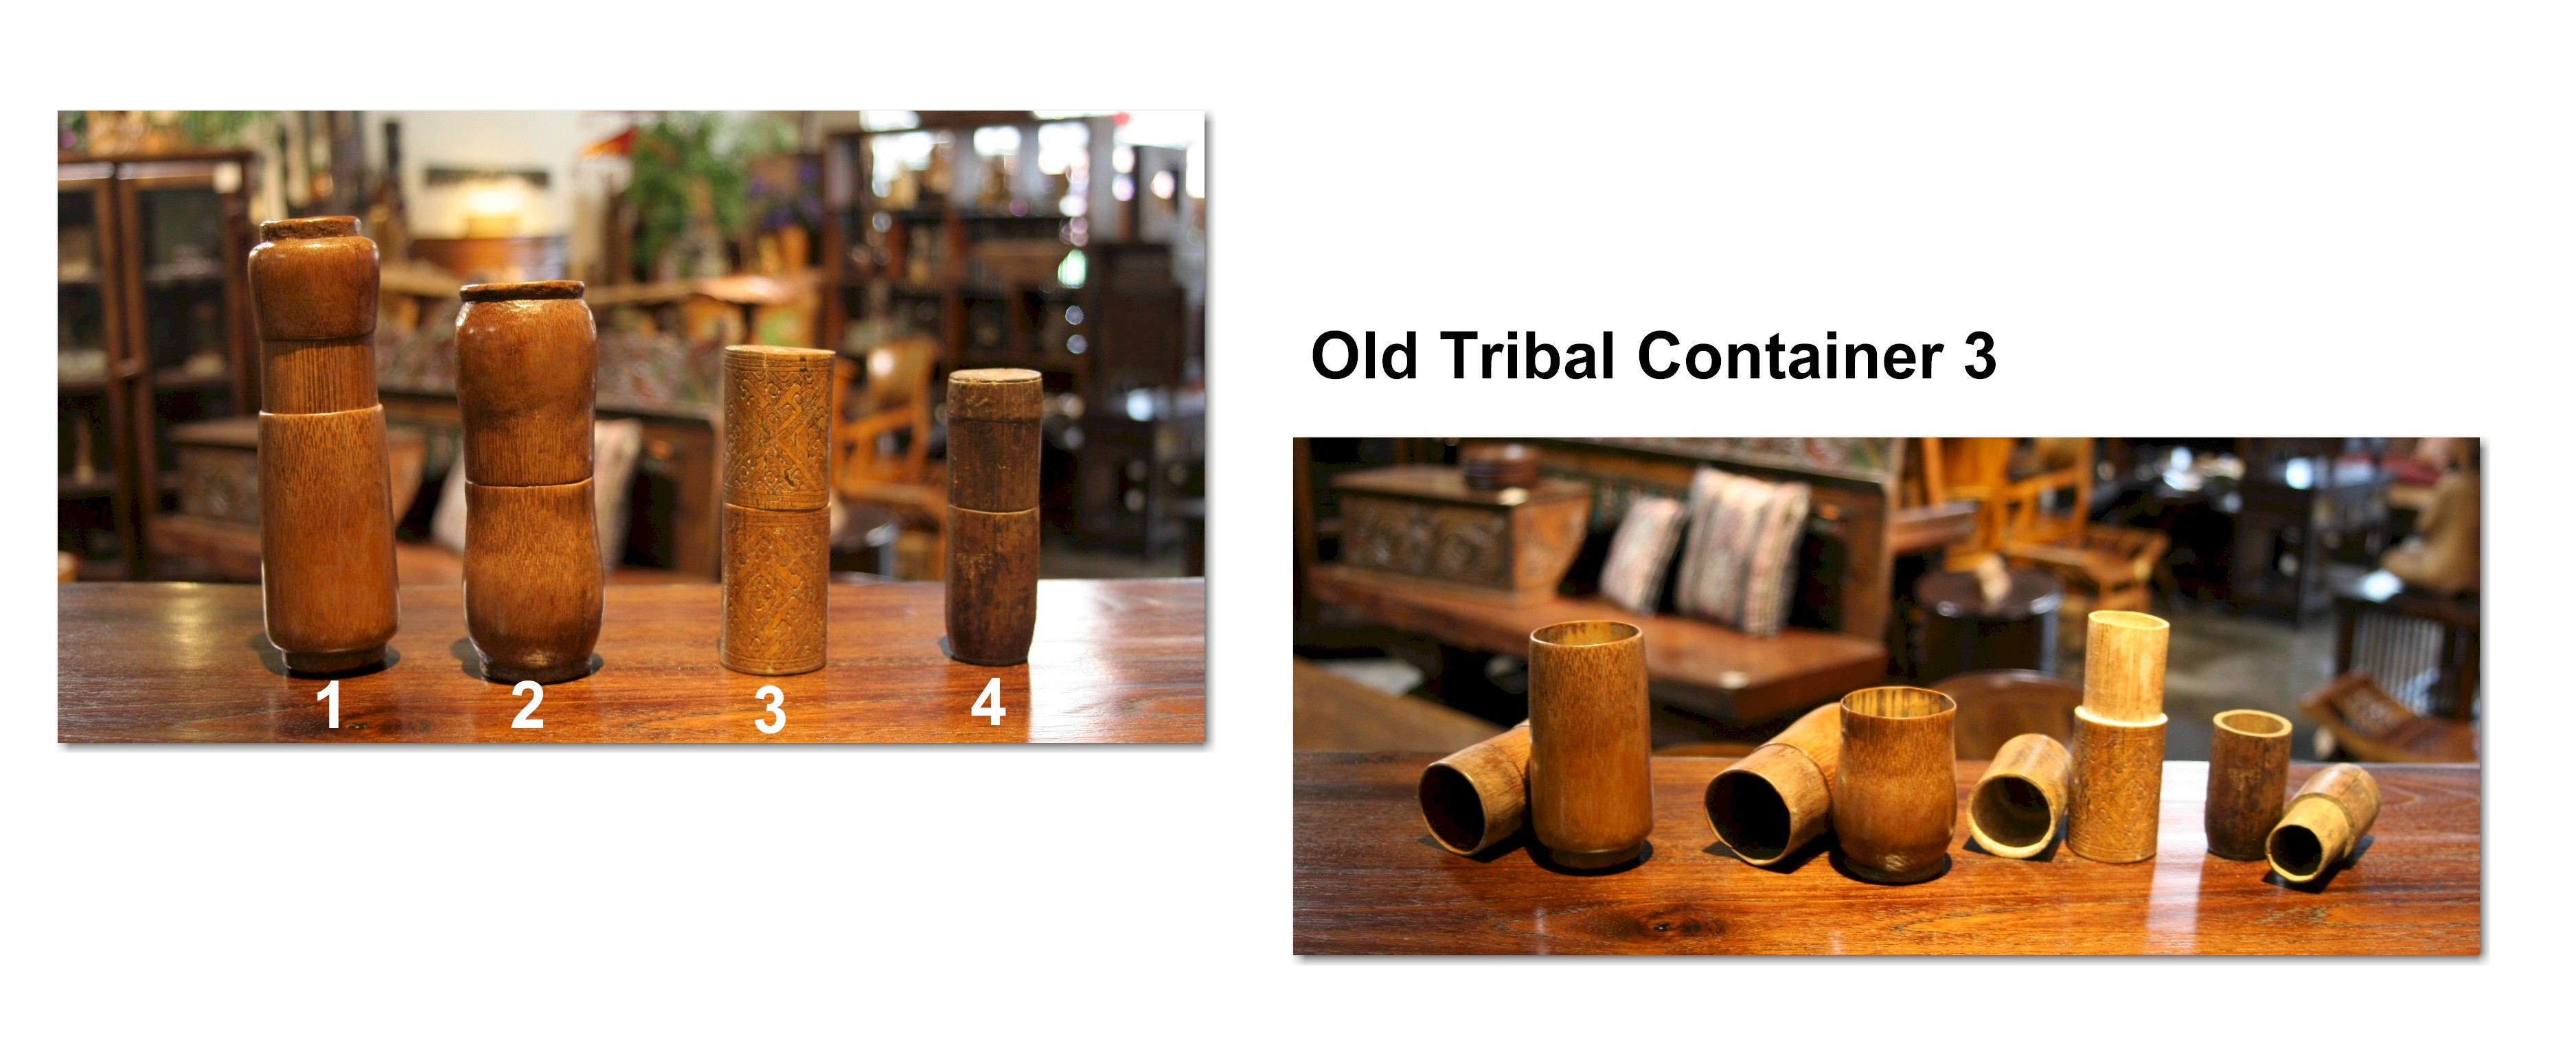 Old Triibal Container 3